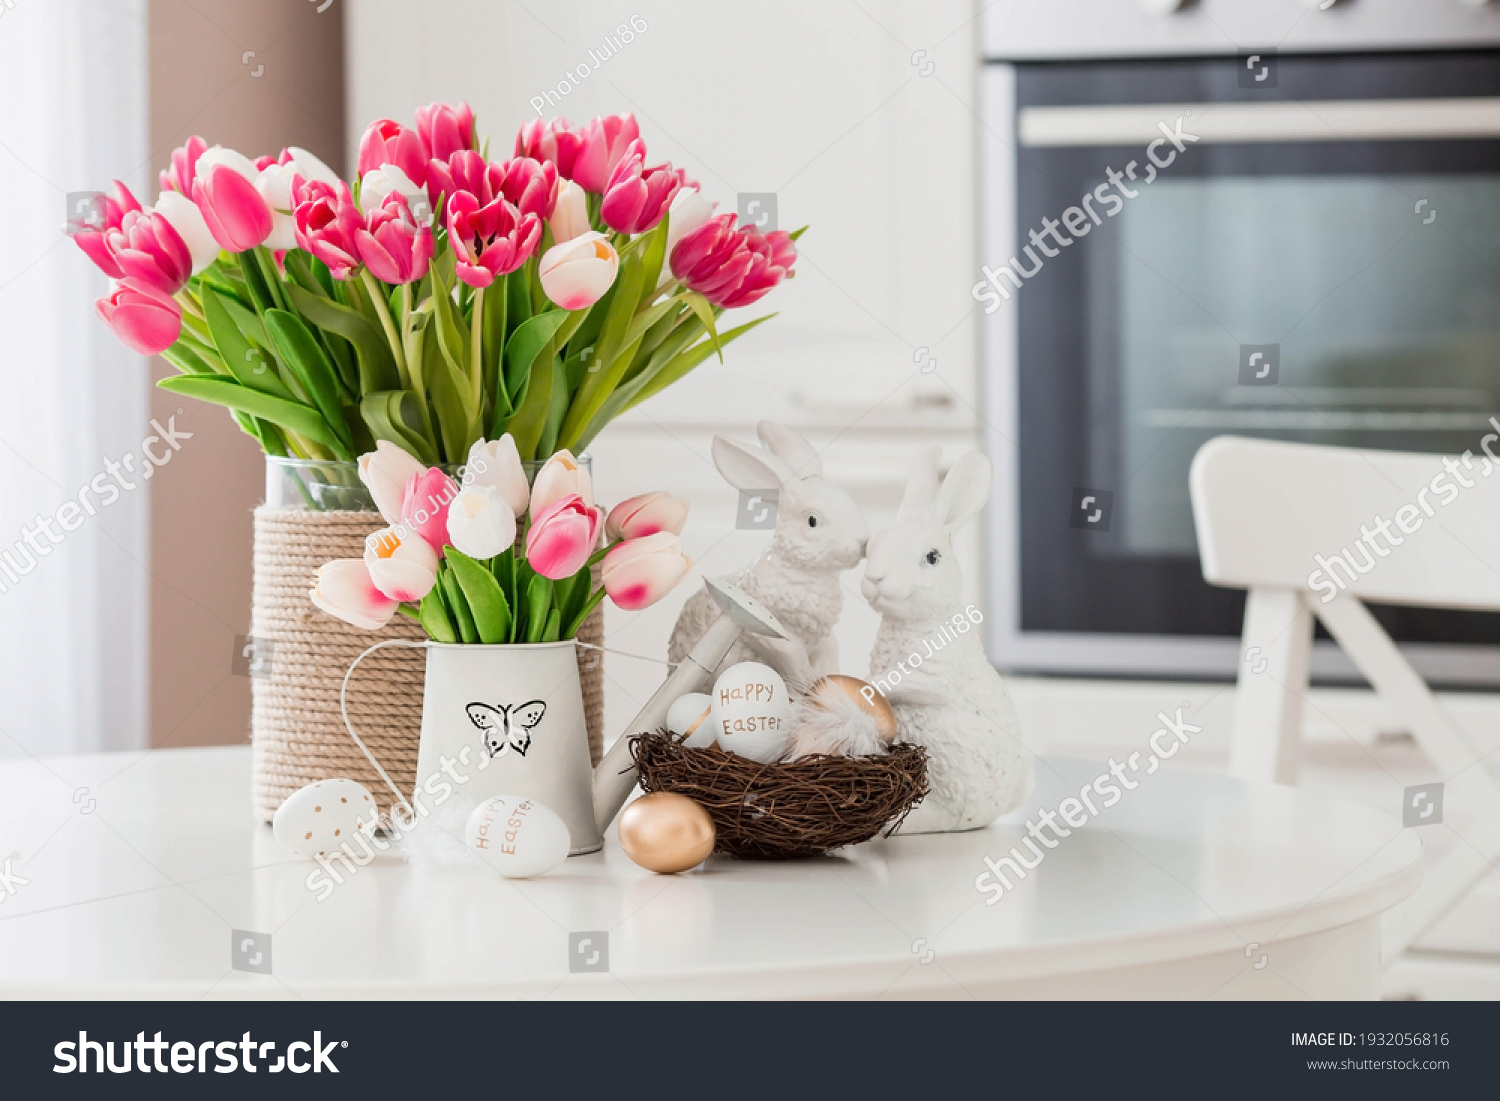 A bouquet of tulips, Easter bunnies and eggs with a golden pattern on the table. In the background is a white Scandinavian-style kitchen. Beautiful greeting card. The minimal concept. #1932056816